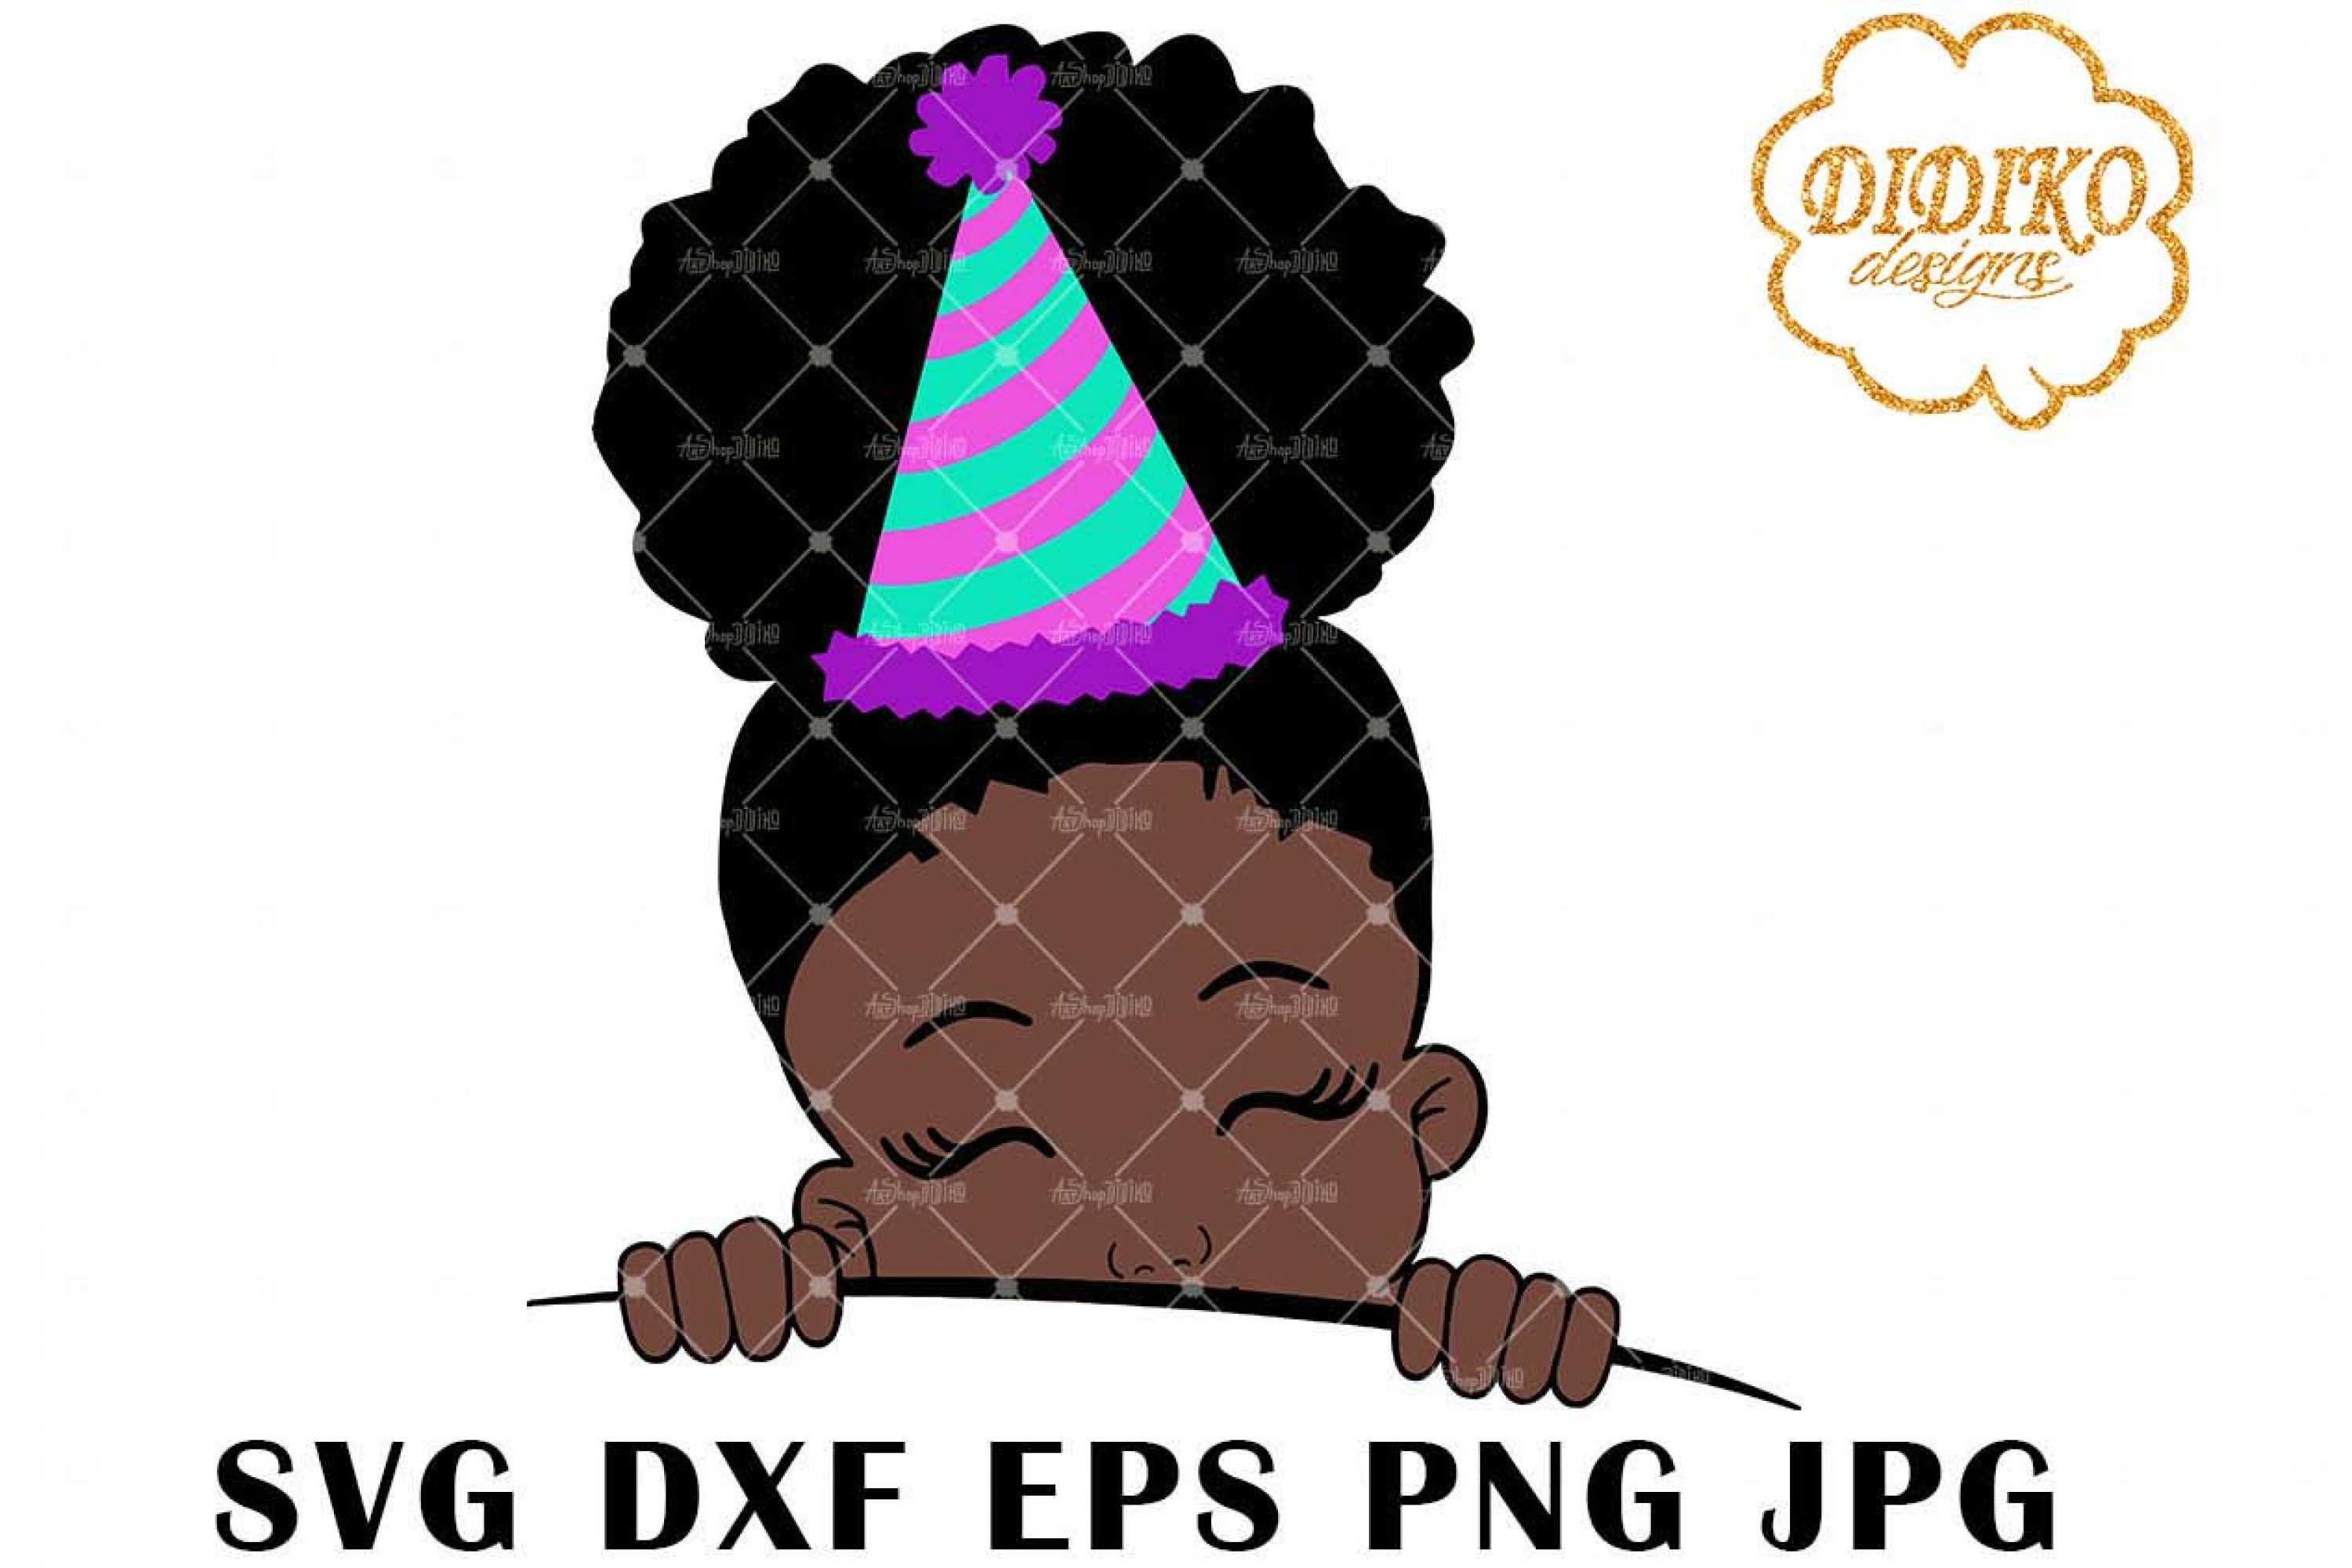 Afro Birthday Girl Peek A Boo 2 SVG, Afro Puff SVG